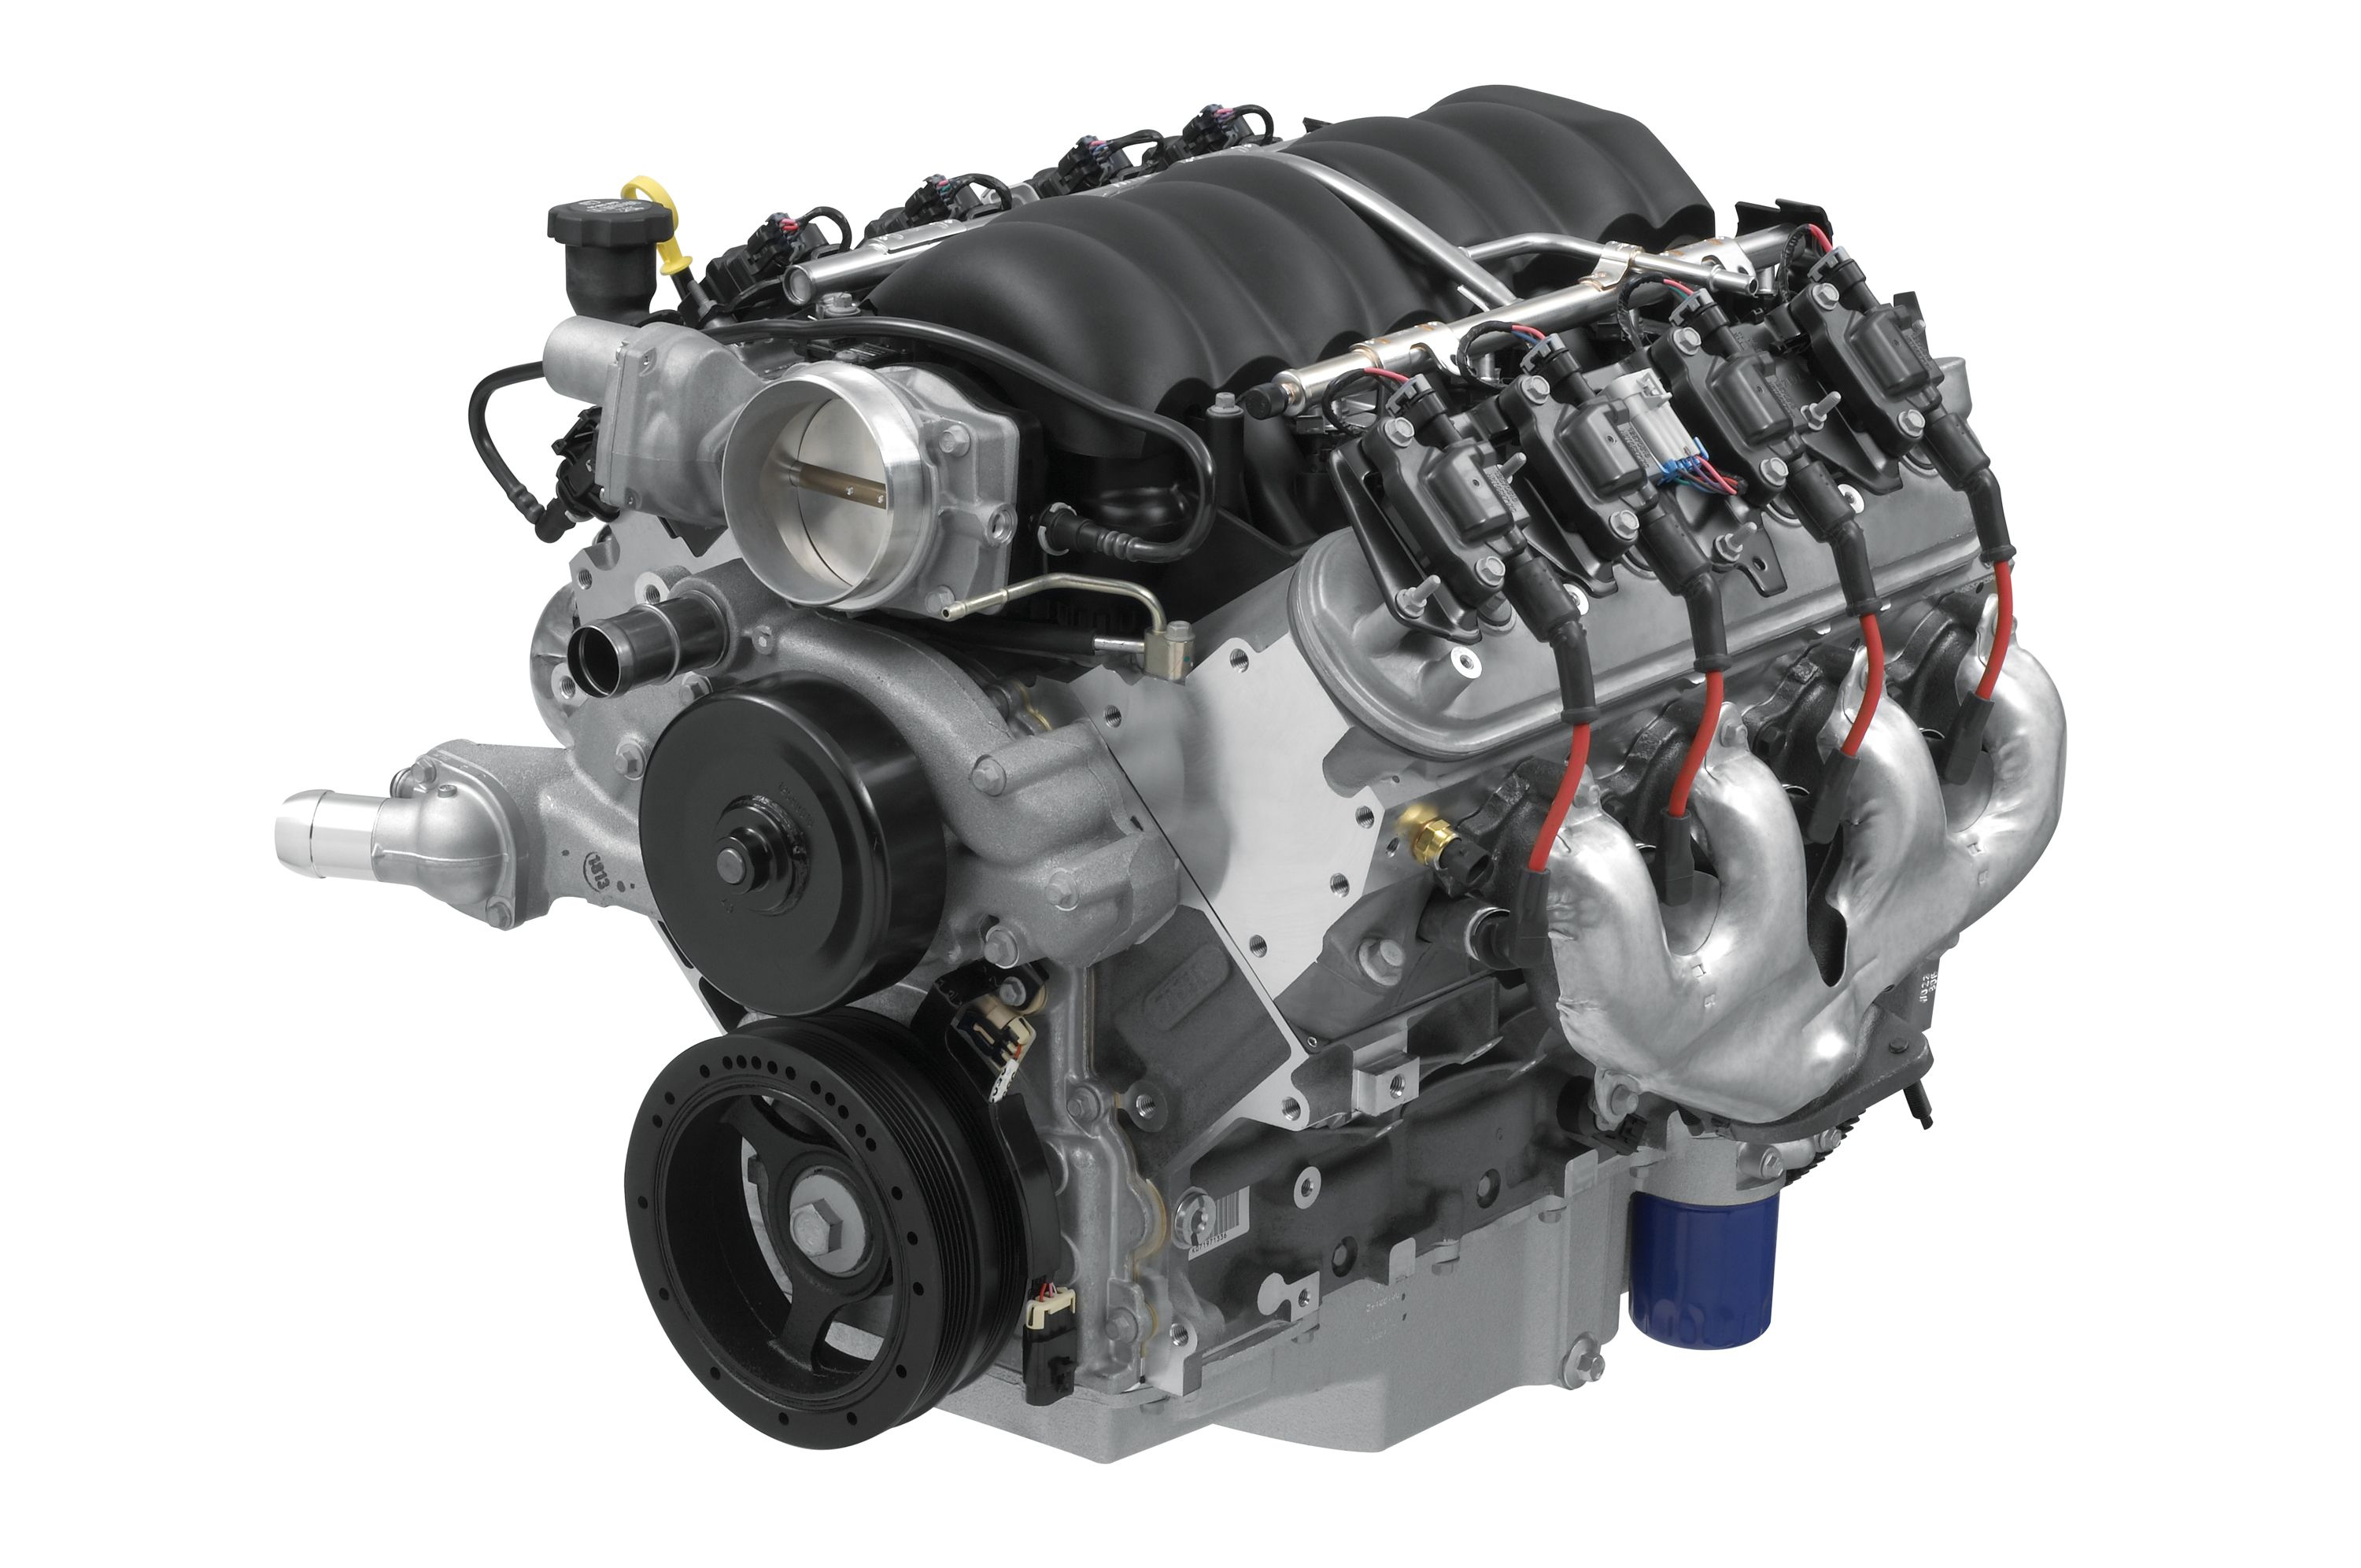 E Rod Ls3 Engine From Chevy Crate Motors Crate Engines Ls Engine